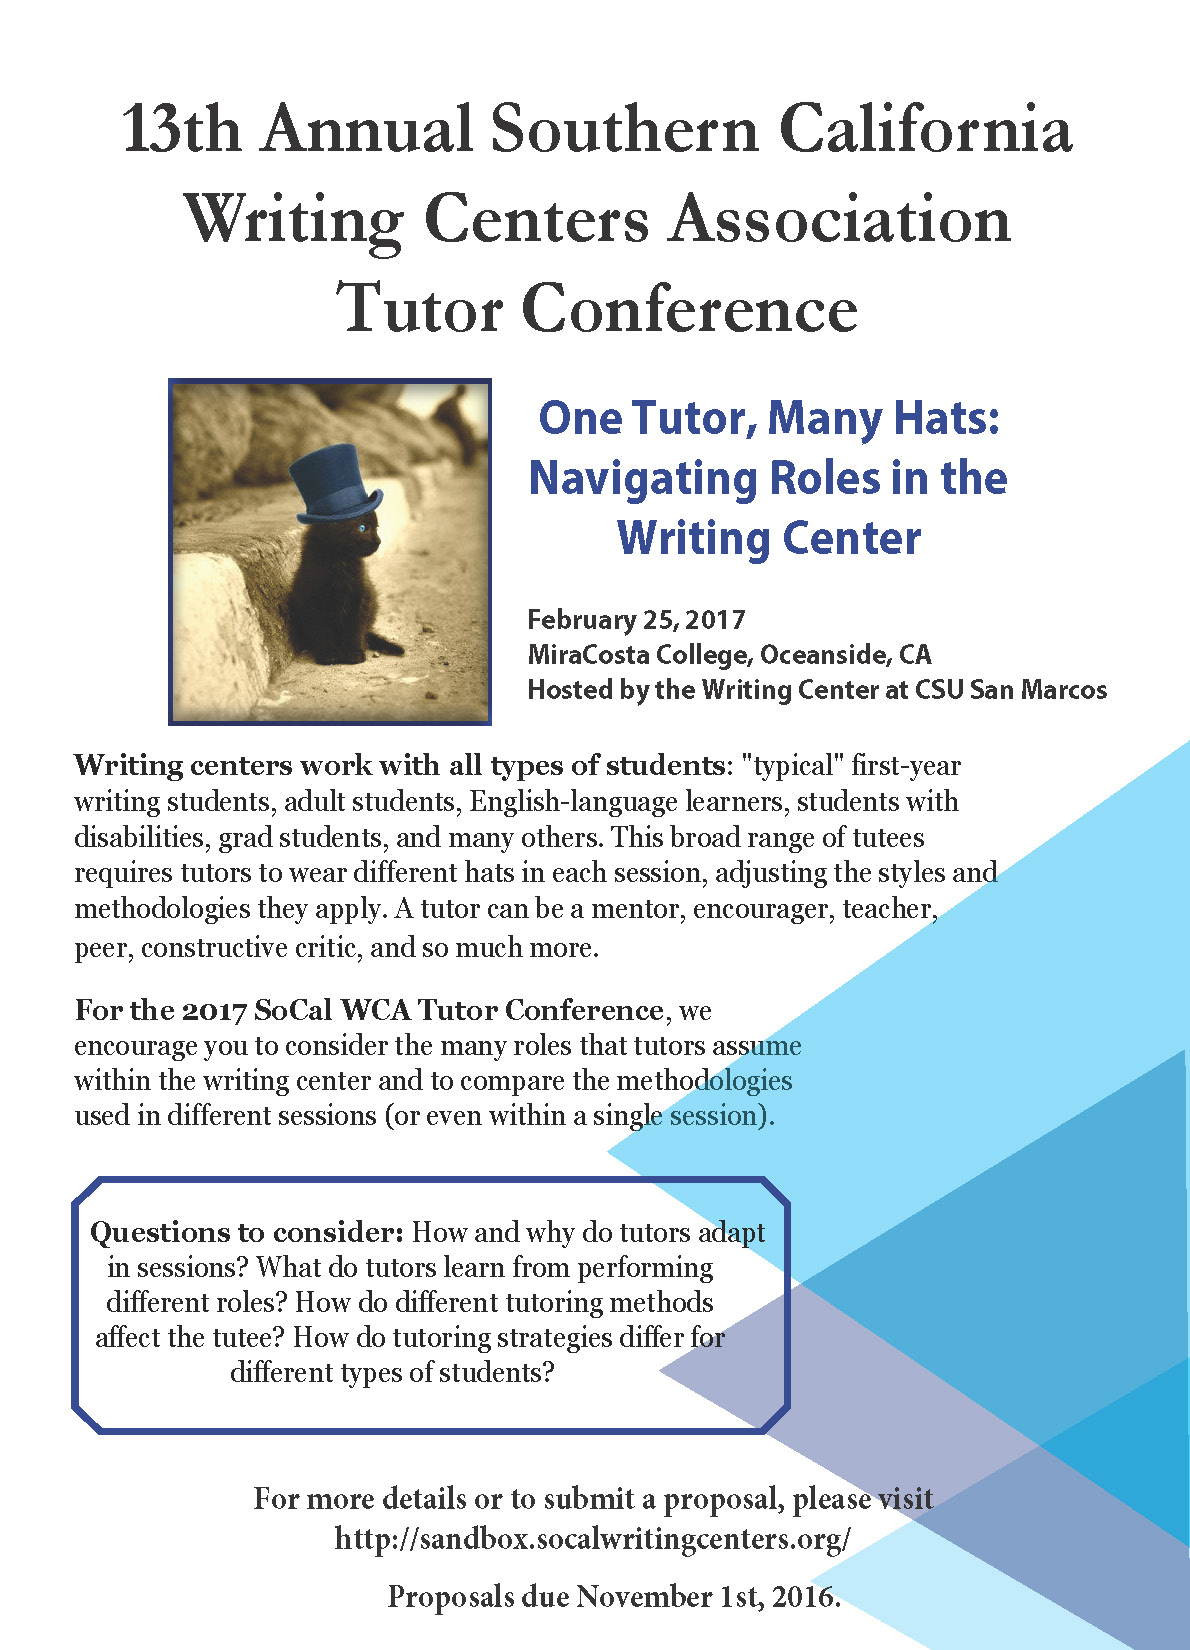 tutor-conference-2017-call-proposals